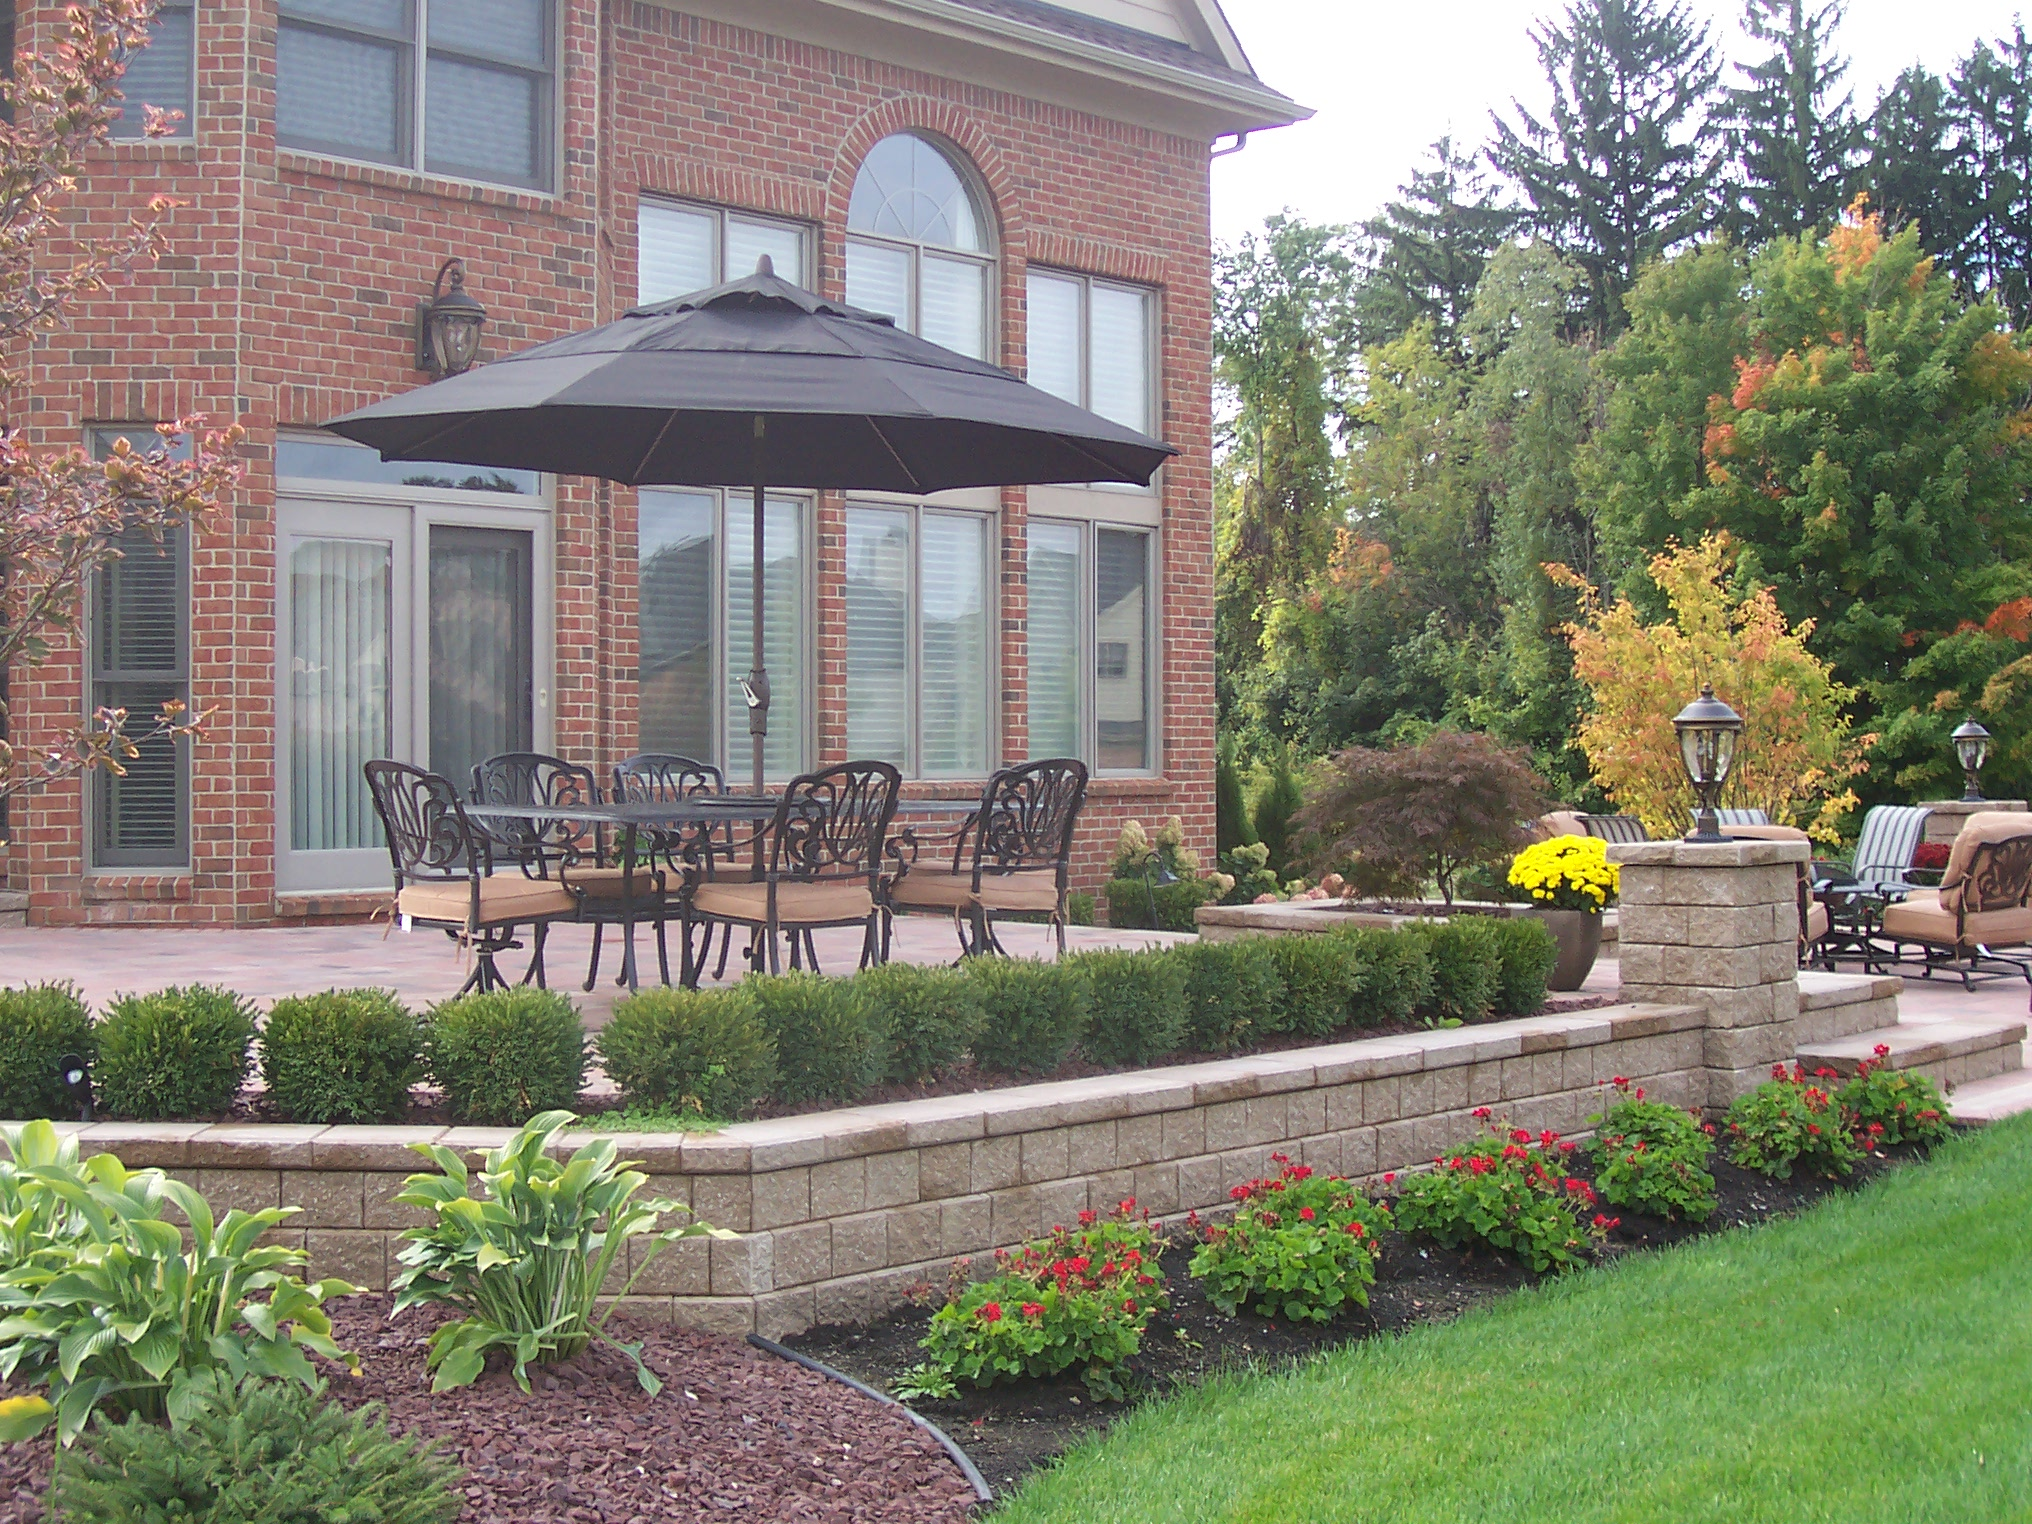 How to Find Reliable Landscaping Companies That Offer Financing Plans in Troy, MI